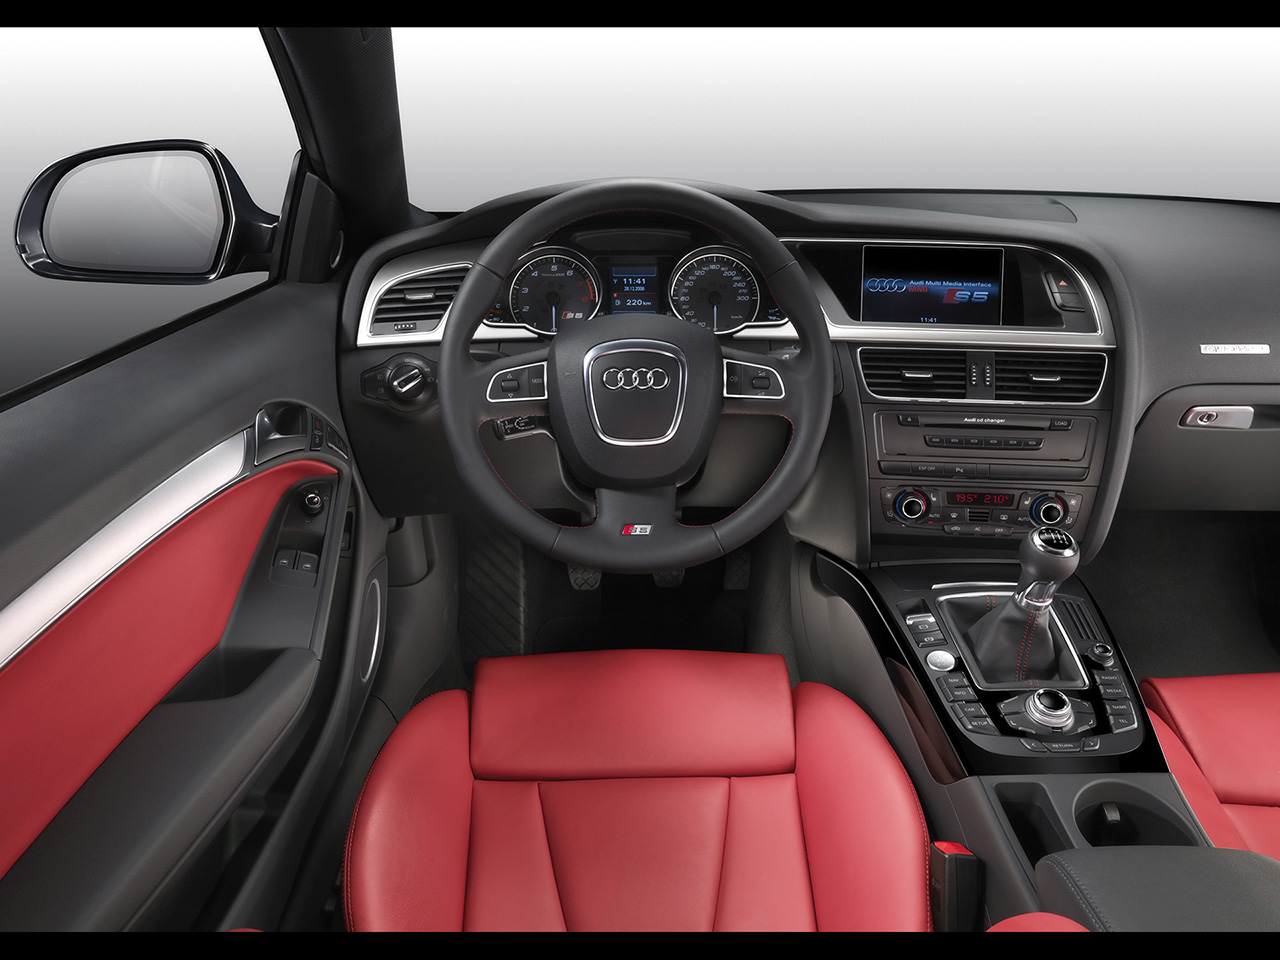 Awesome The Sophisticated Interior Of The S5 Has Seating For Up To Five  Wheels With Summer Performance Tires, A Fullcolor Heads Up Display, Tunes  Via A Bang ...